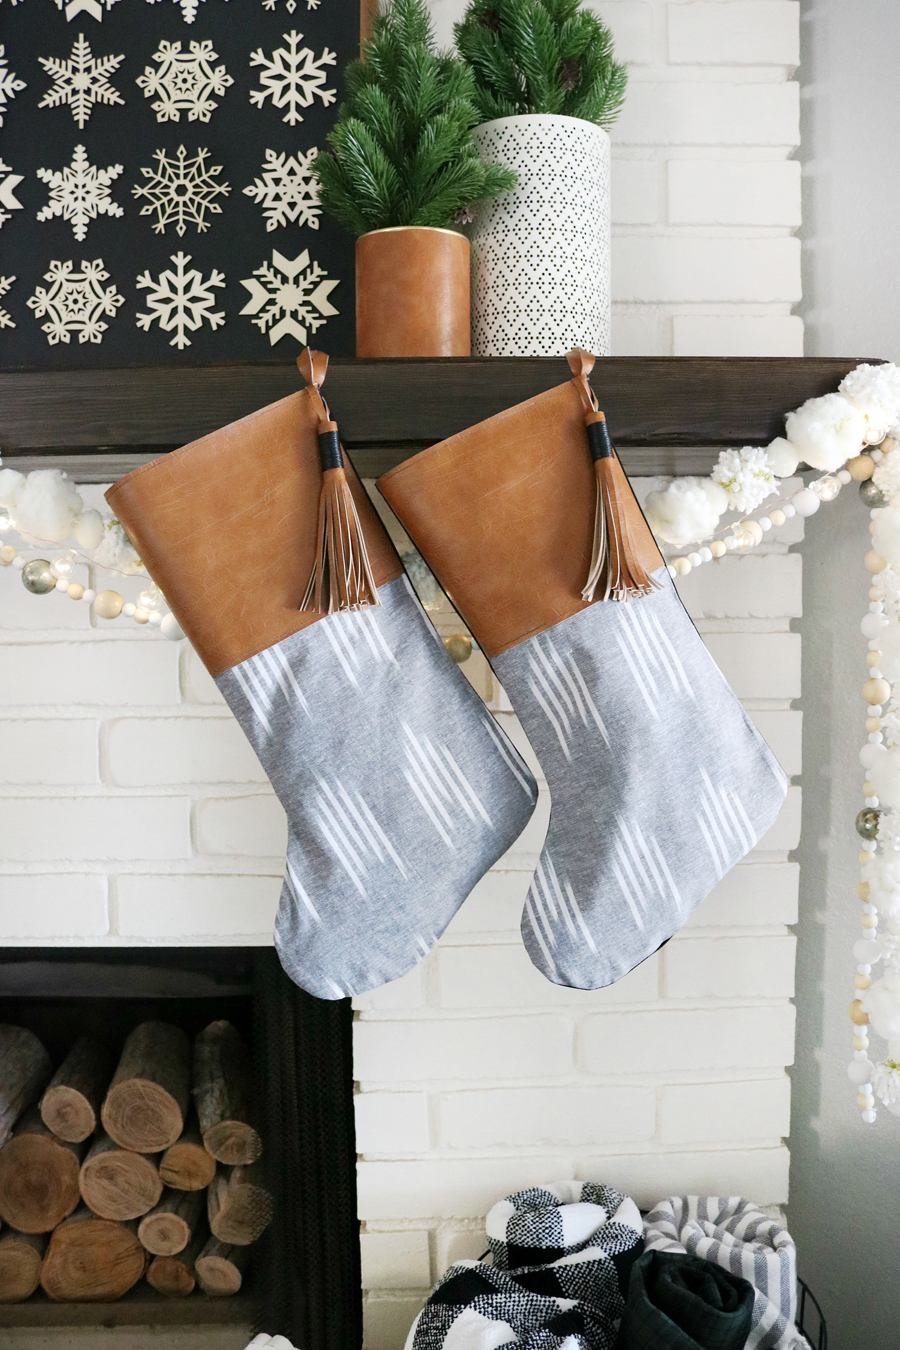 DIY Boho Inspired Christmas Stockings